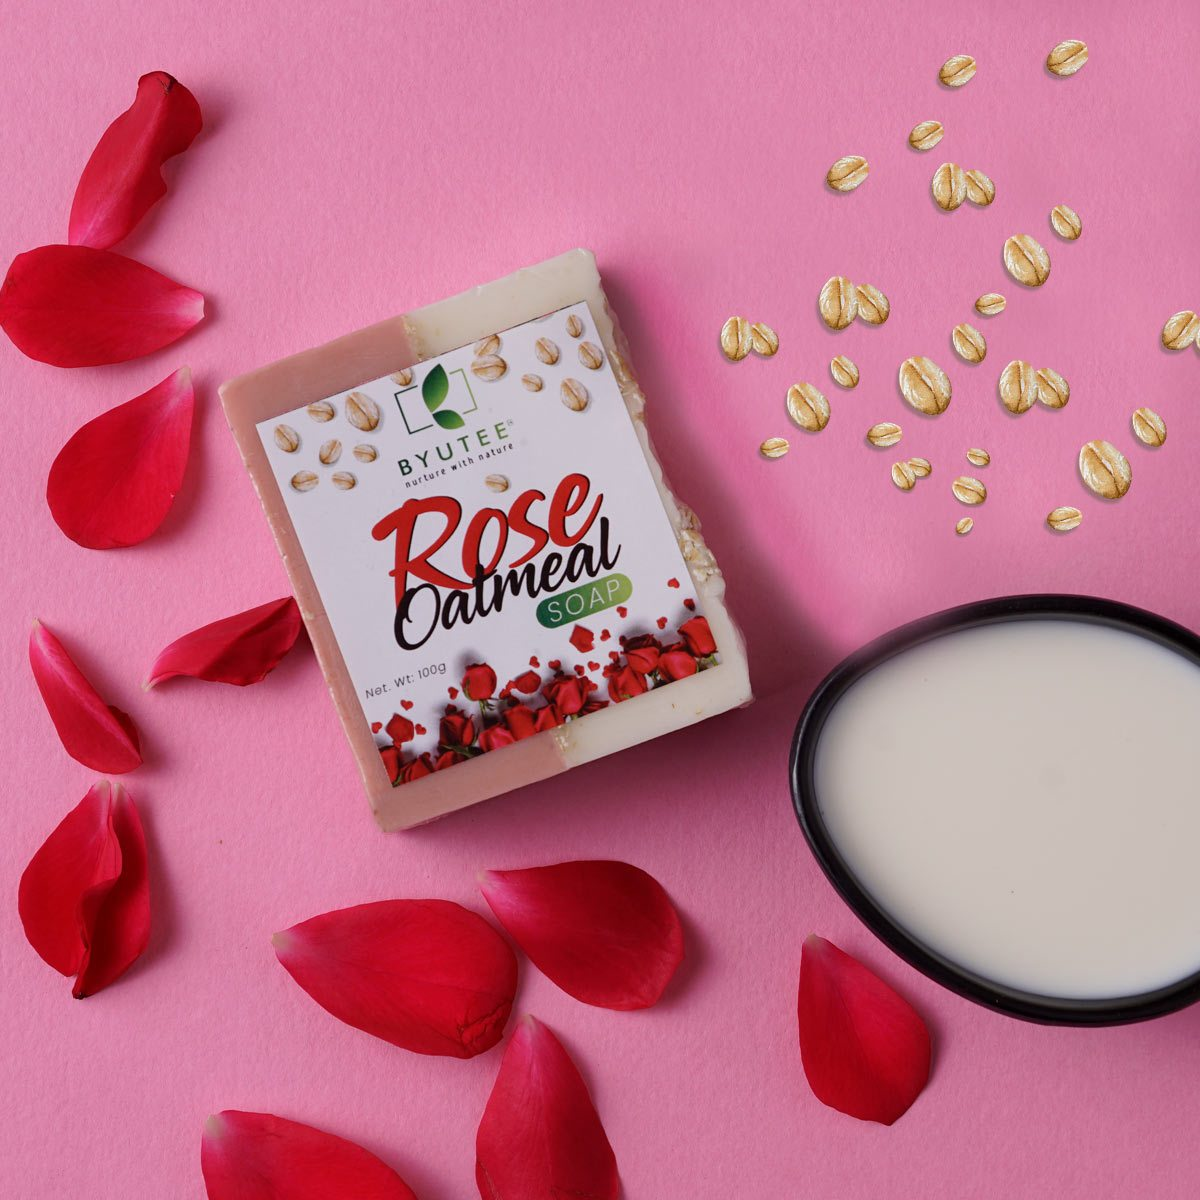 Rose Oat Meal Soap